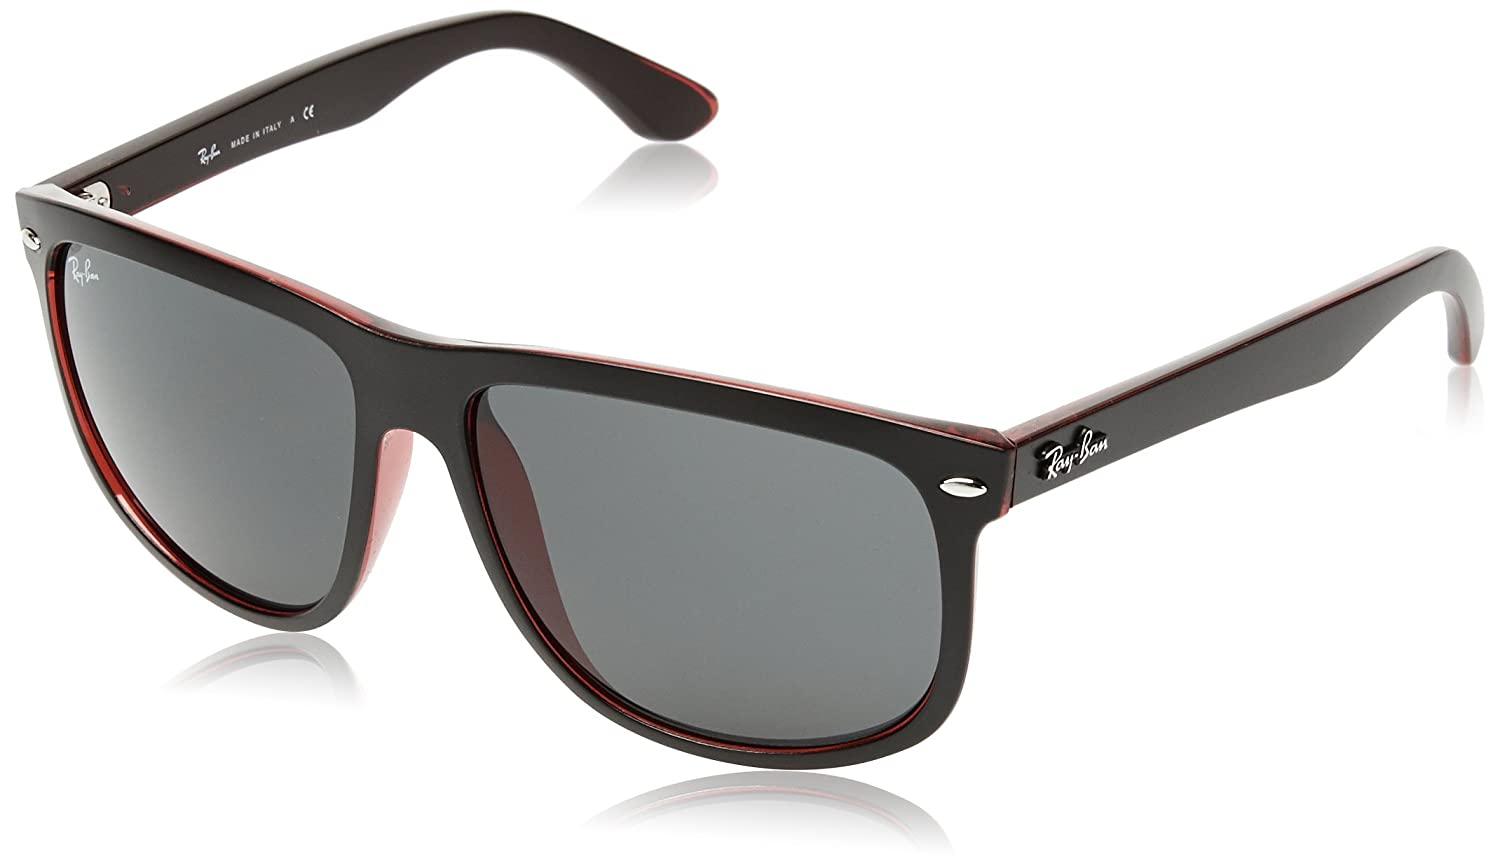 c34cfbee88a Ray-Ban Men s RB4147 Sunglasses